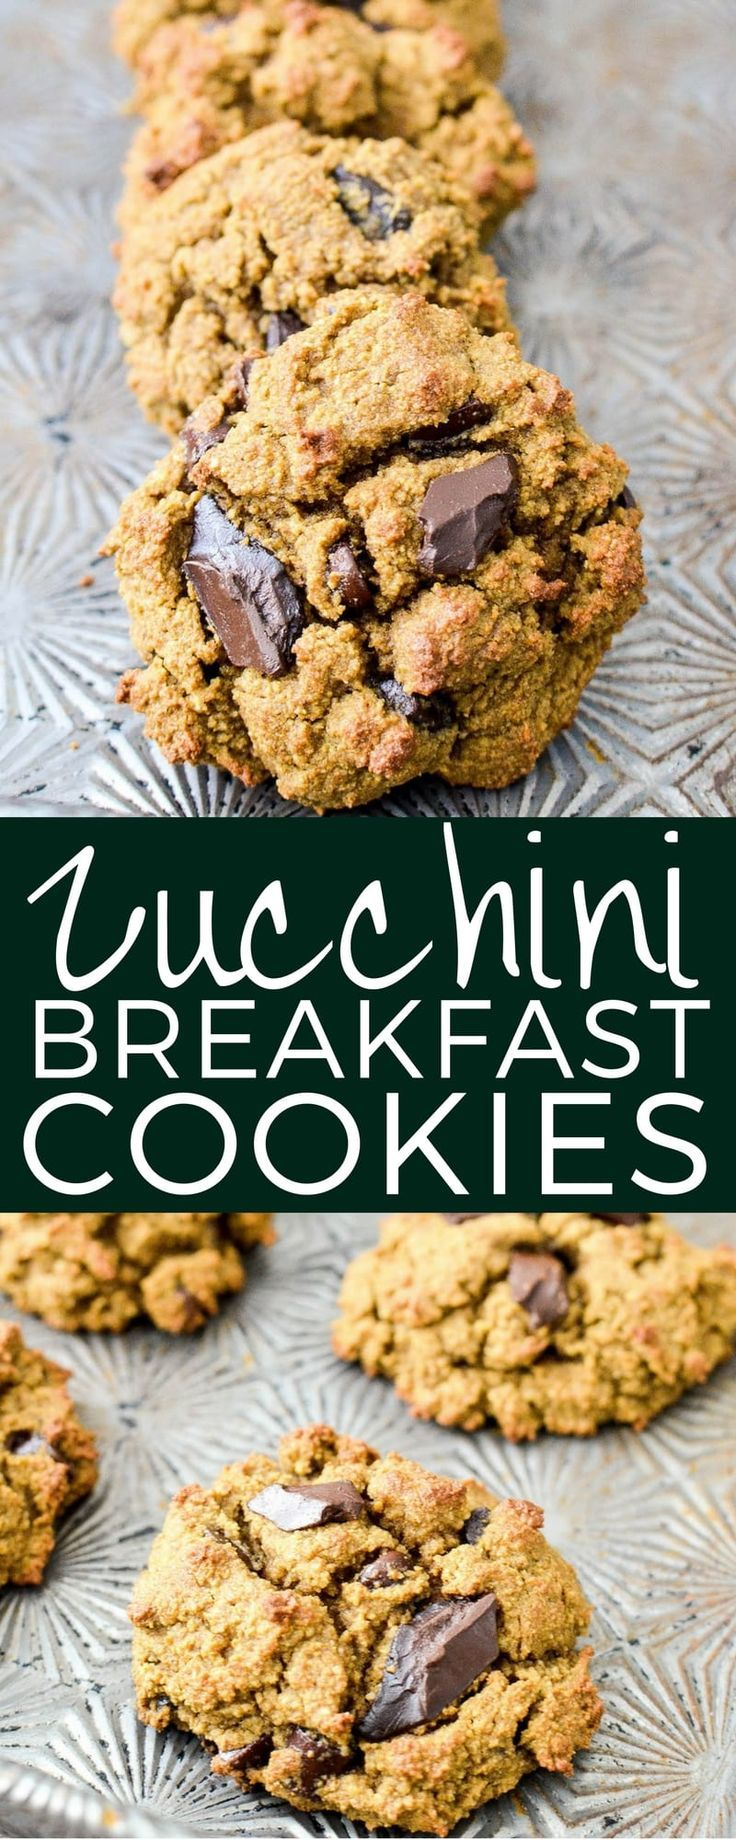 Paleo Zucchini Breakfast Cookies Are A Healthy And Nutritious